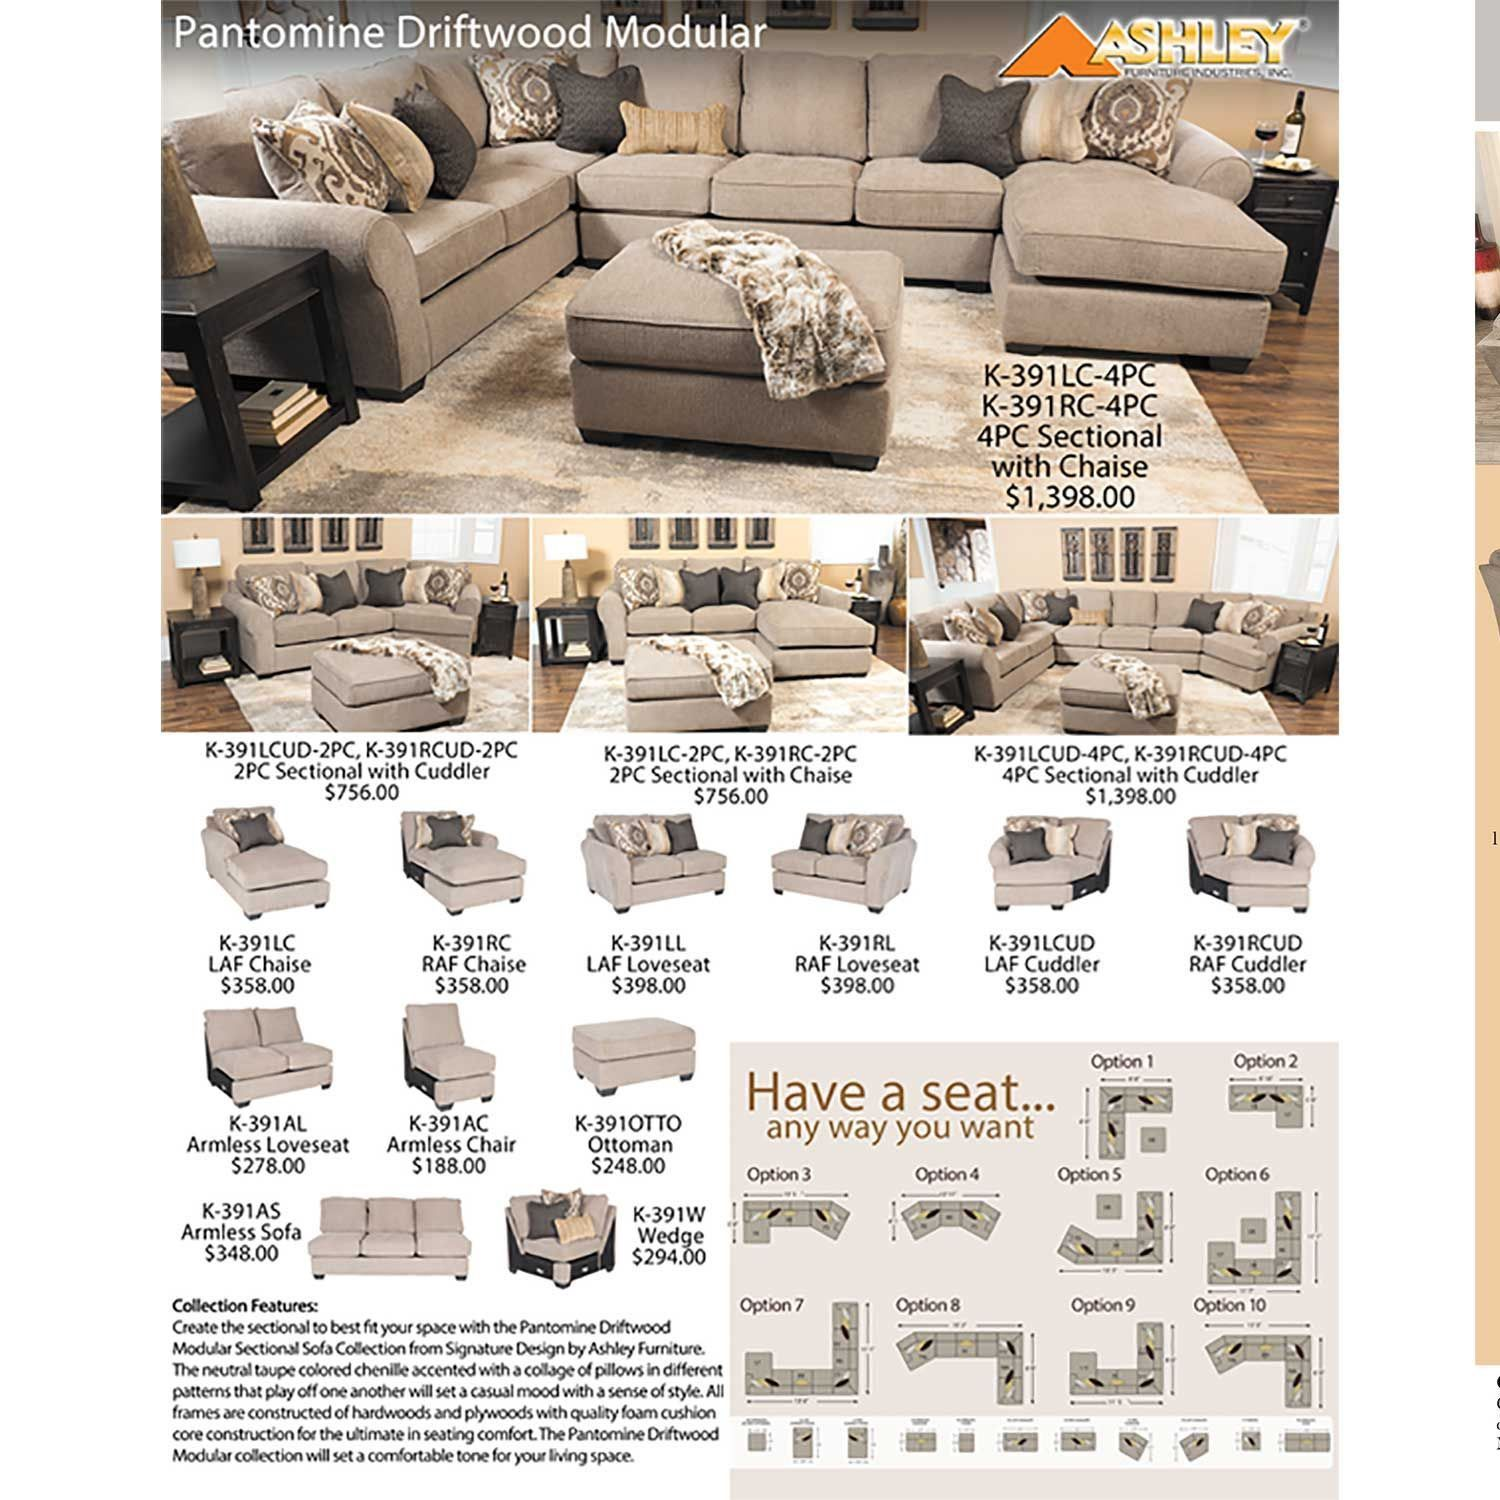 american furniture living room sectionals contemporary centre table for pantomine 4pc with raf cuddler sectional by ashley is now available at warehouse shop our great selection and save